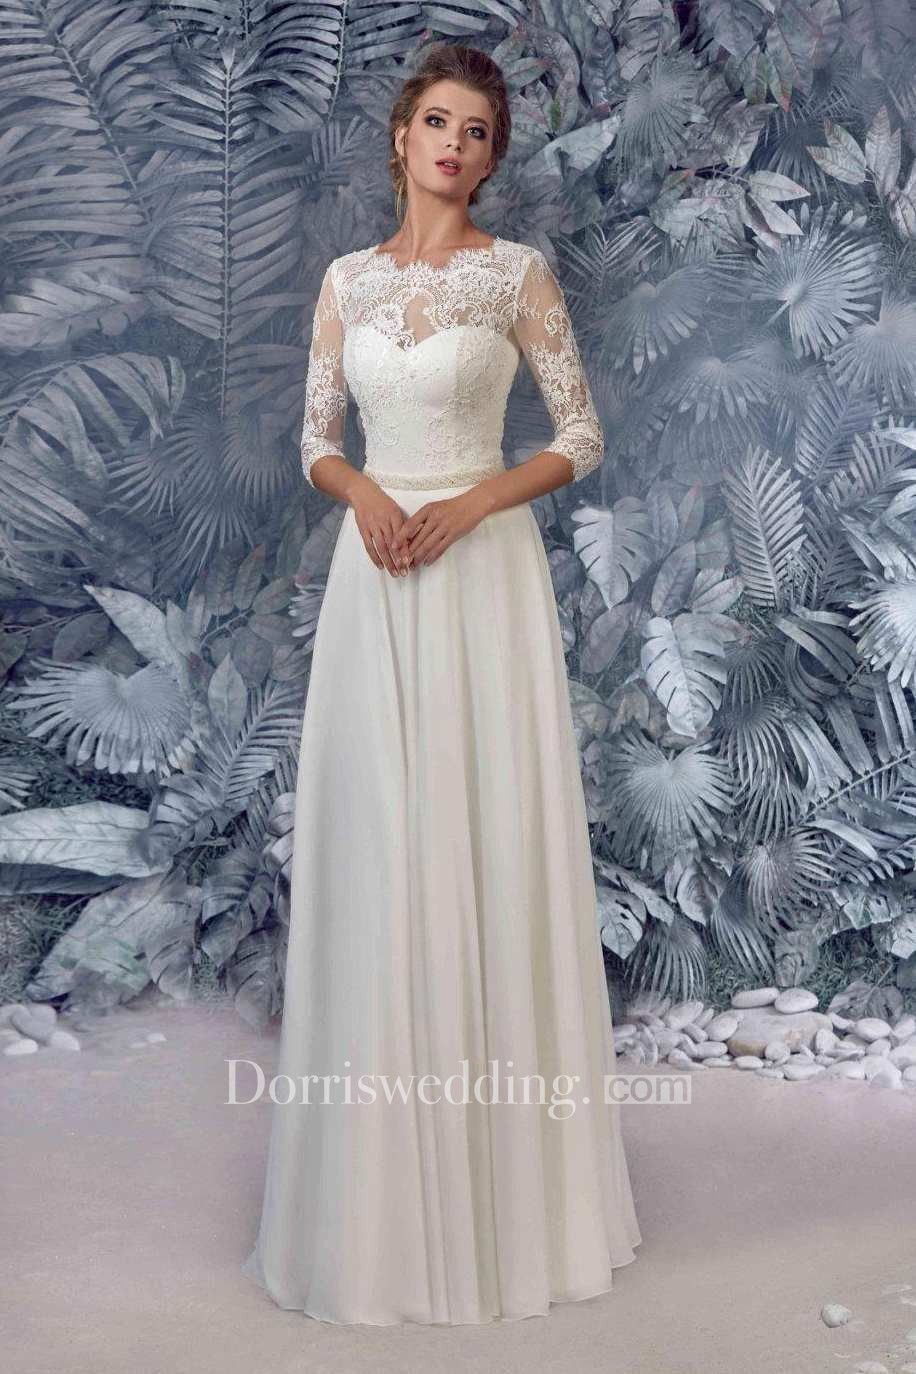 Chiffon satin beaded lace wedding dress fall wedding ideas